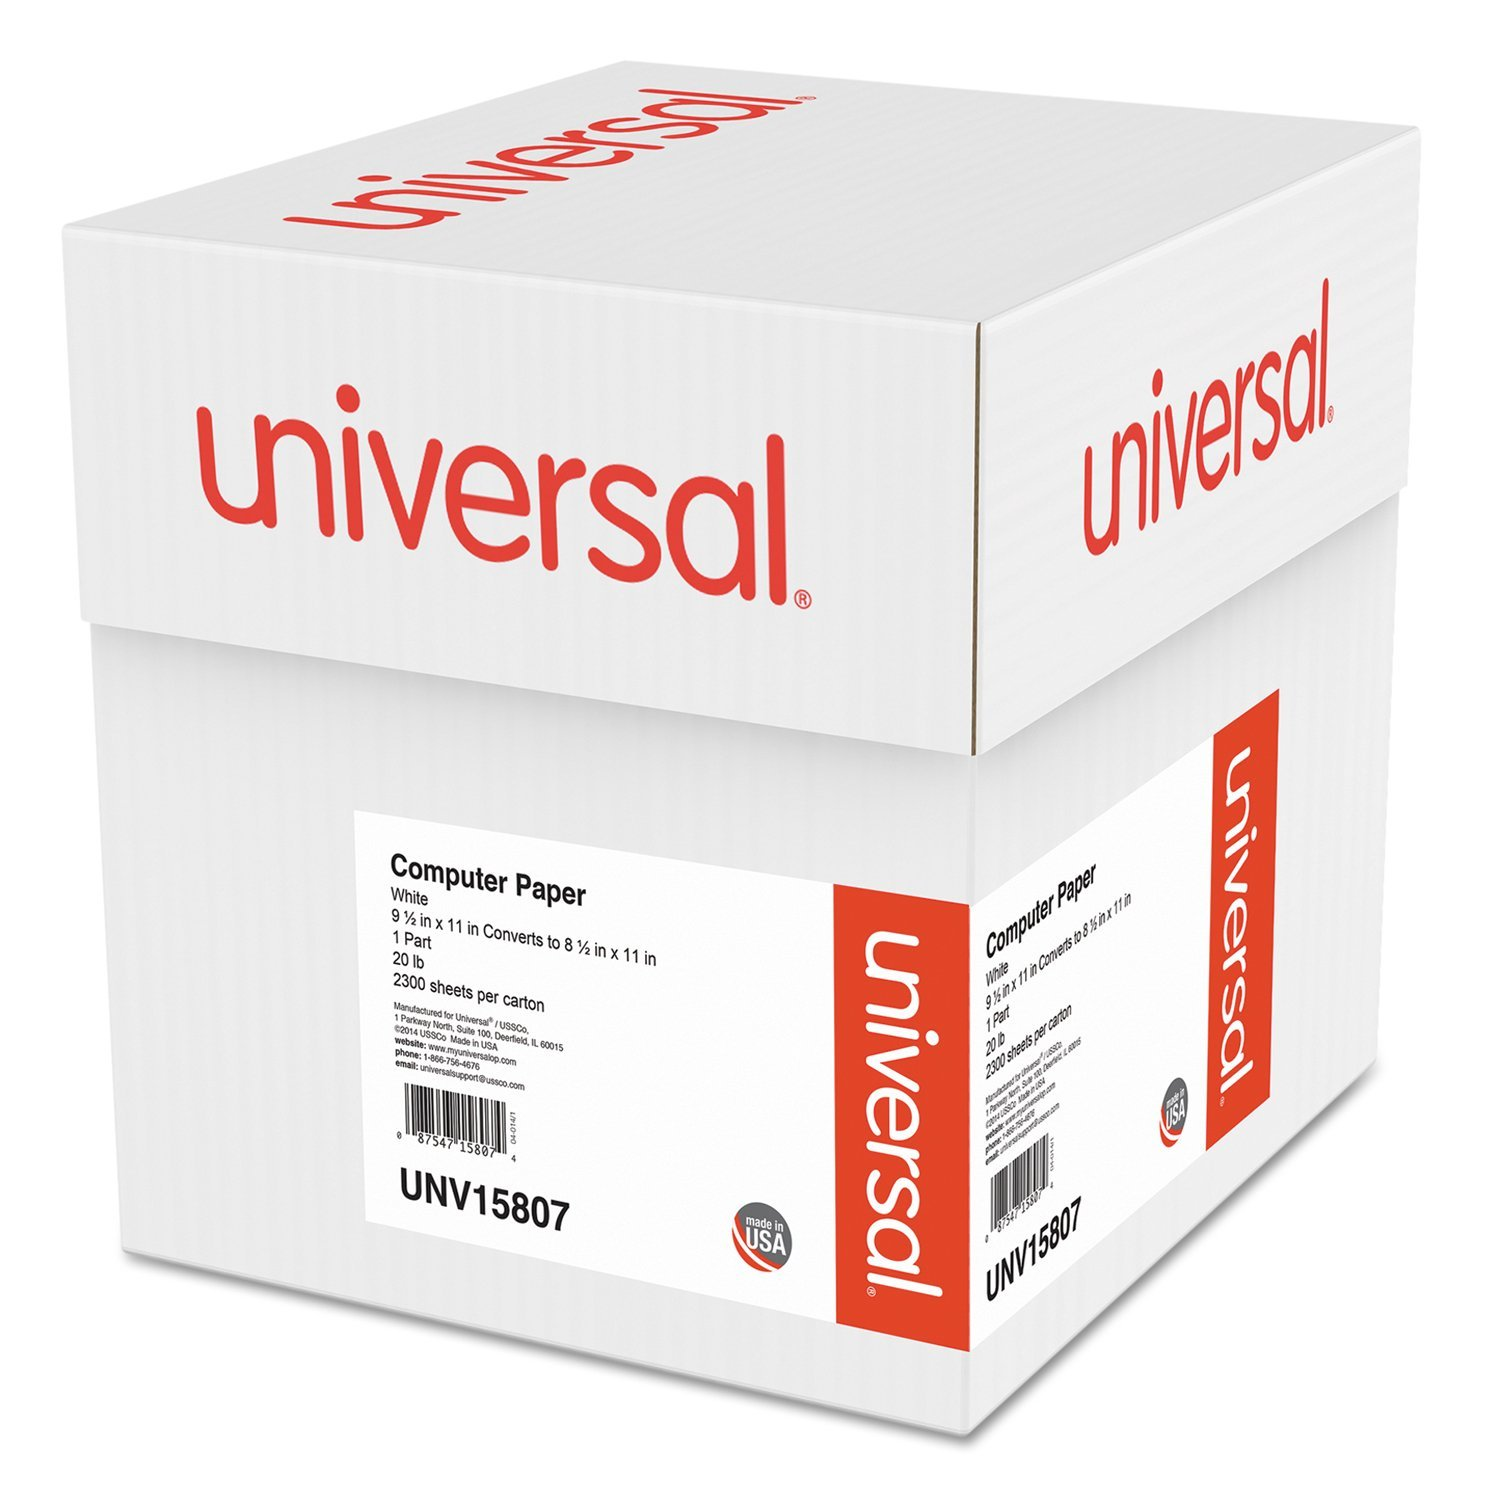 Universal Computer Paper, 20lb, 9-1/2'' x 11'', Letter Trim Perforation, White, 2300 Sheets (15807) by Universal